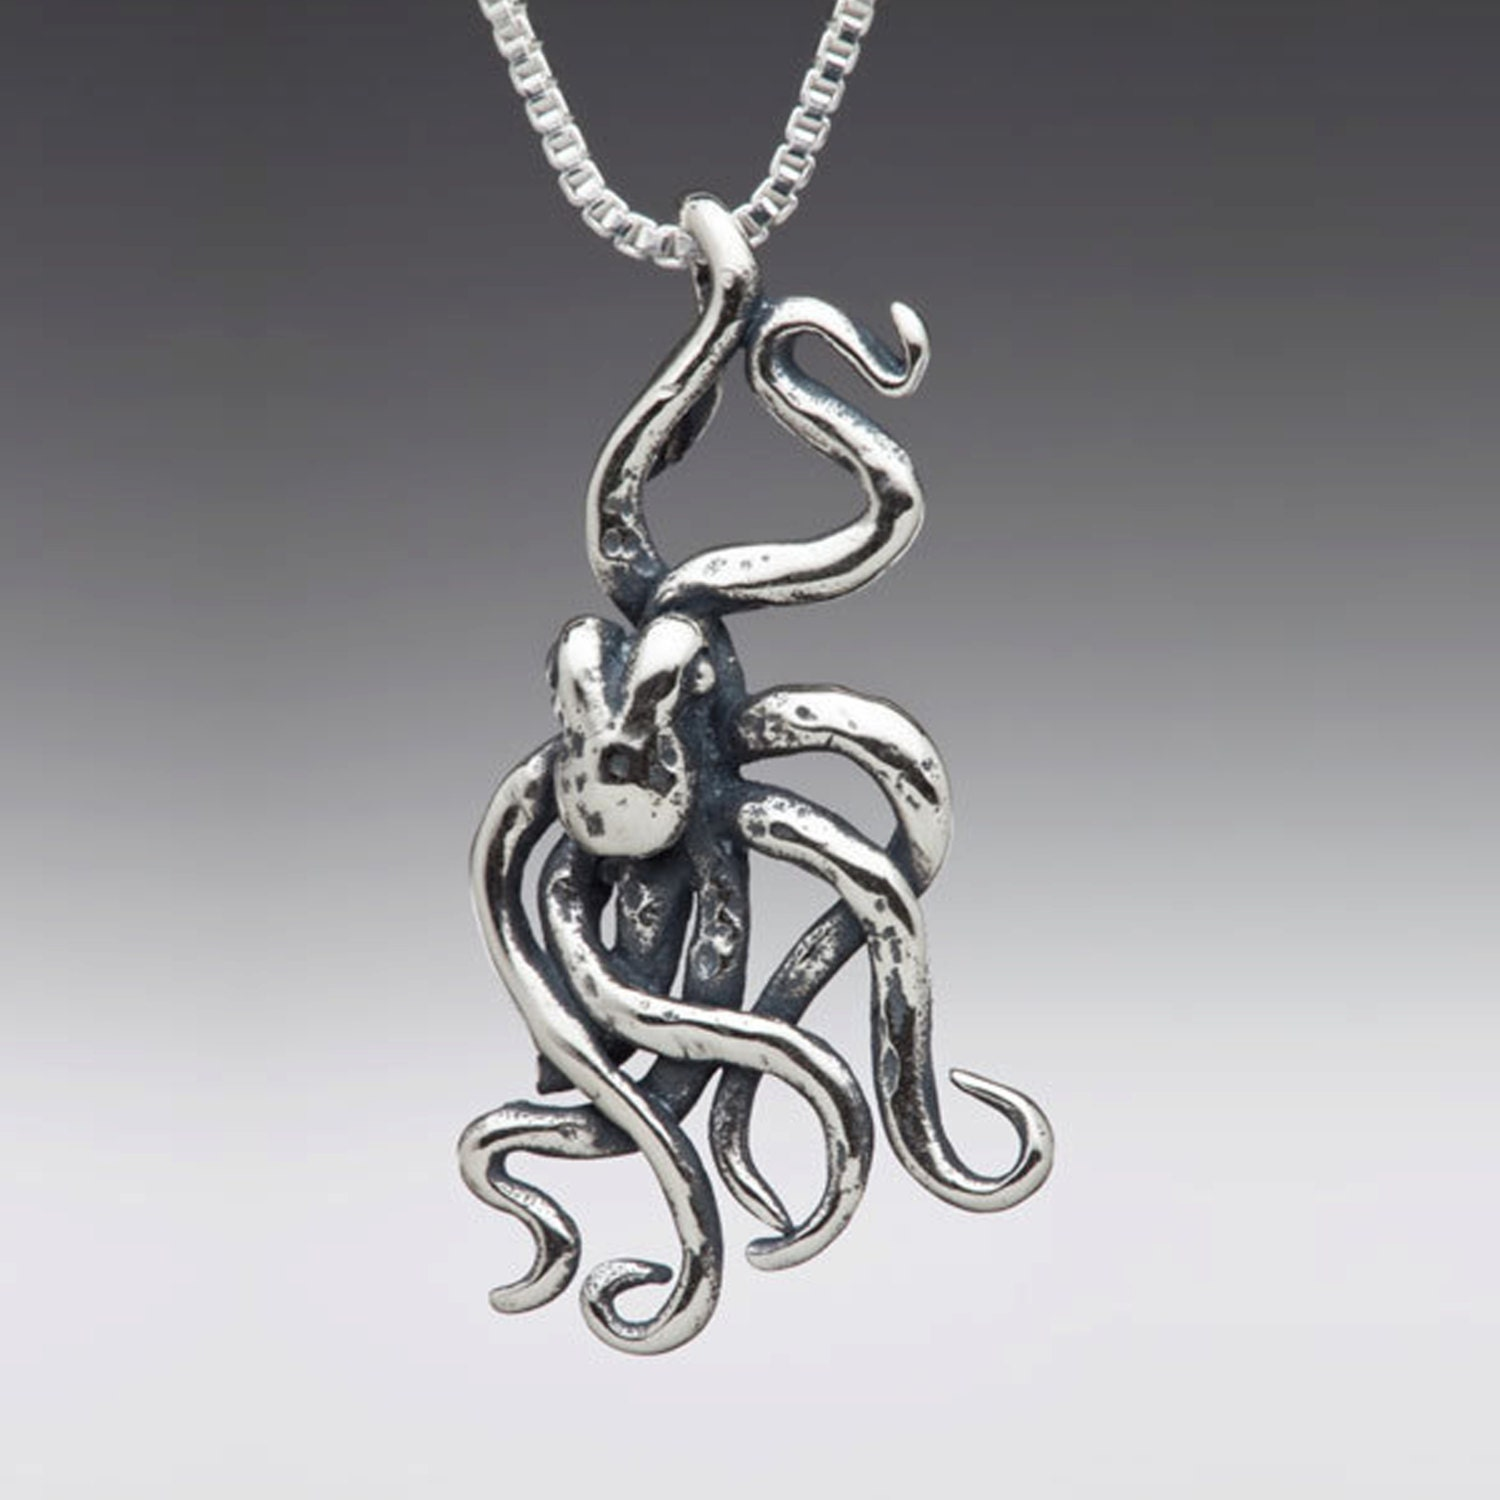 antique octopus htm necklace pendant silver